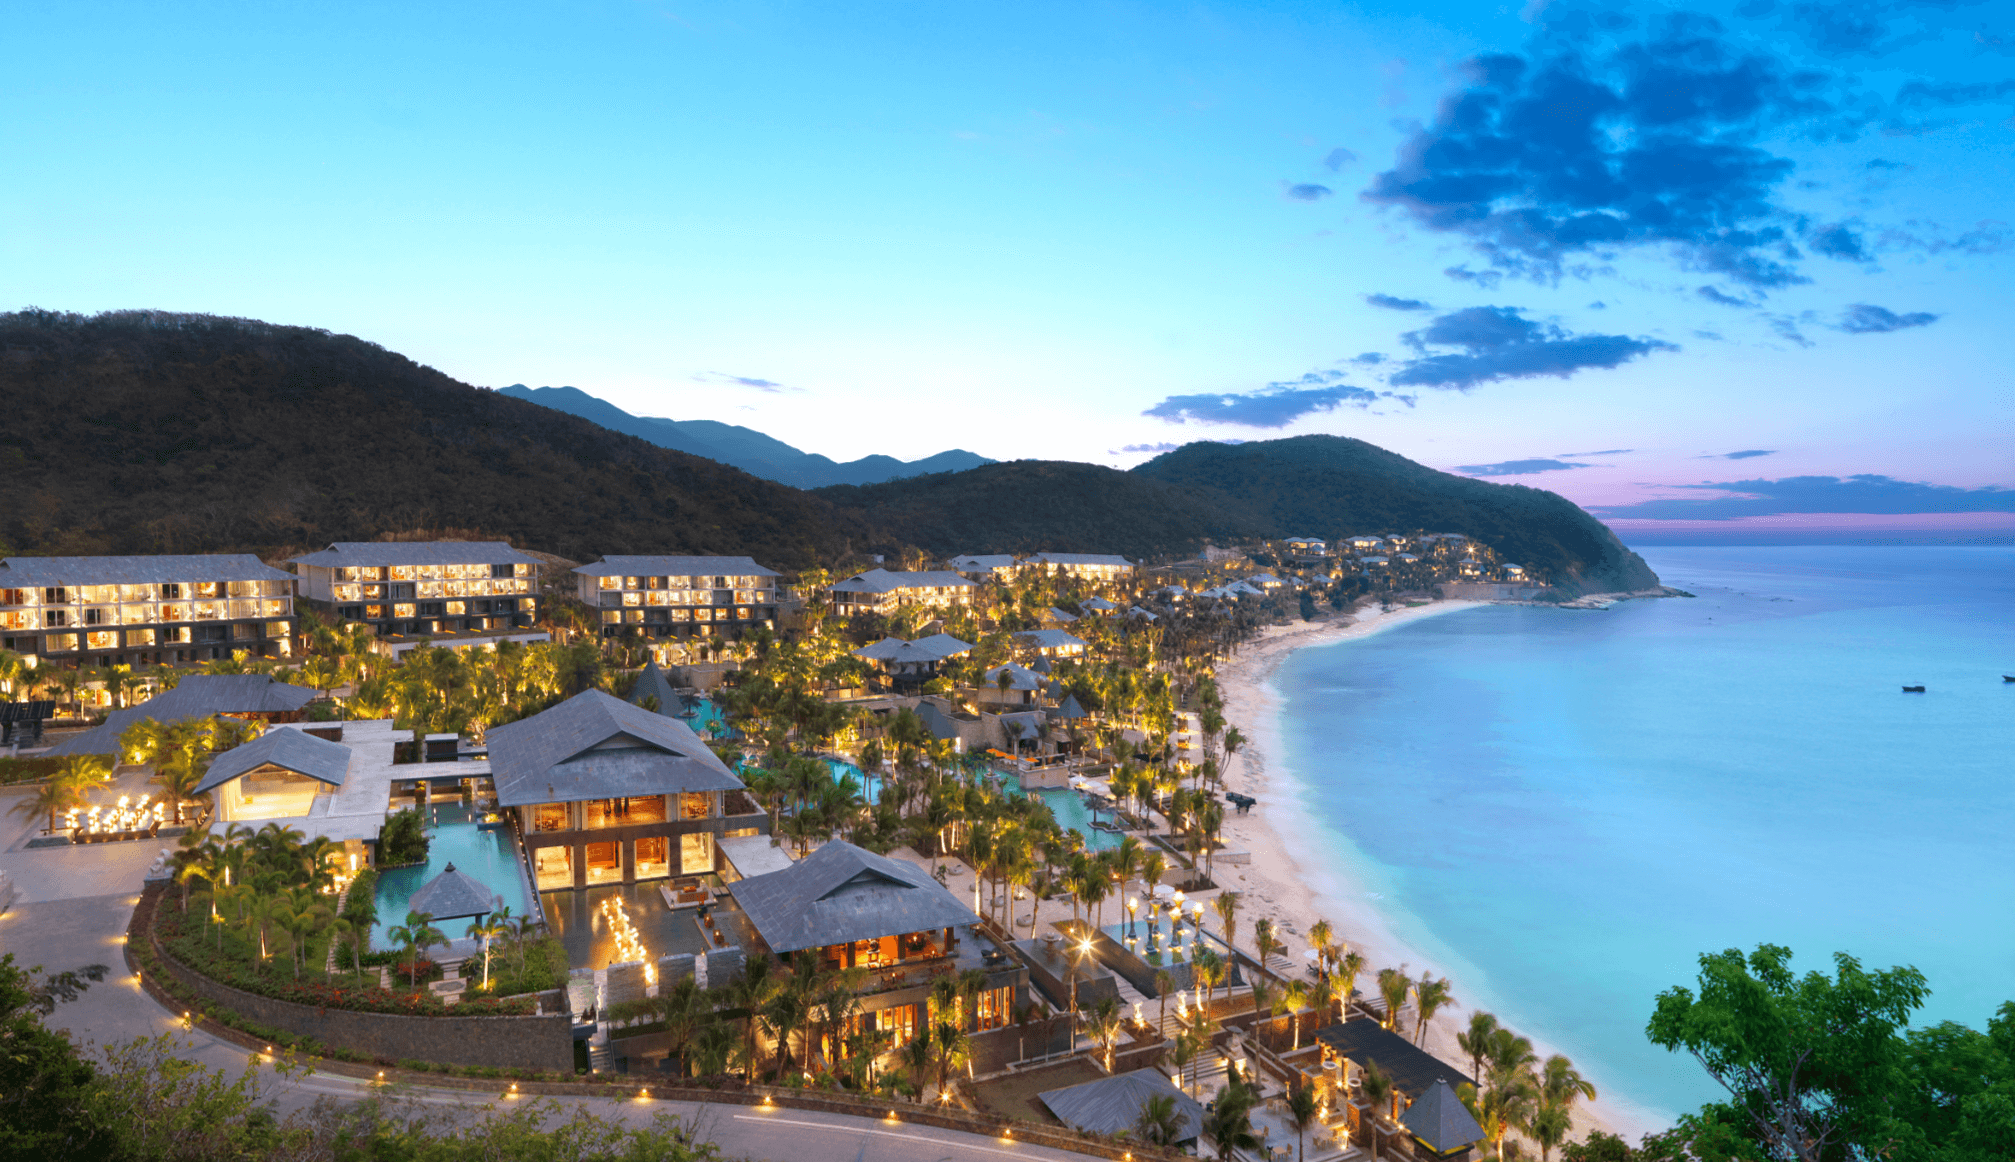 <div class='expired'>EXPIRED</div>Moscow, Russia to Sanya, China for only €285 roundtrip   Secret Flying